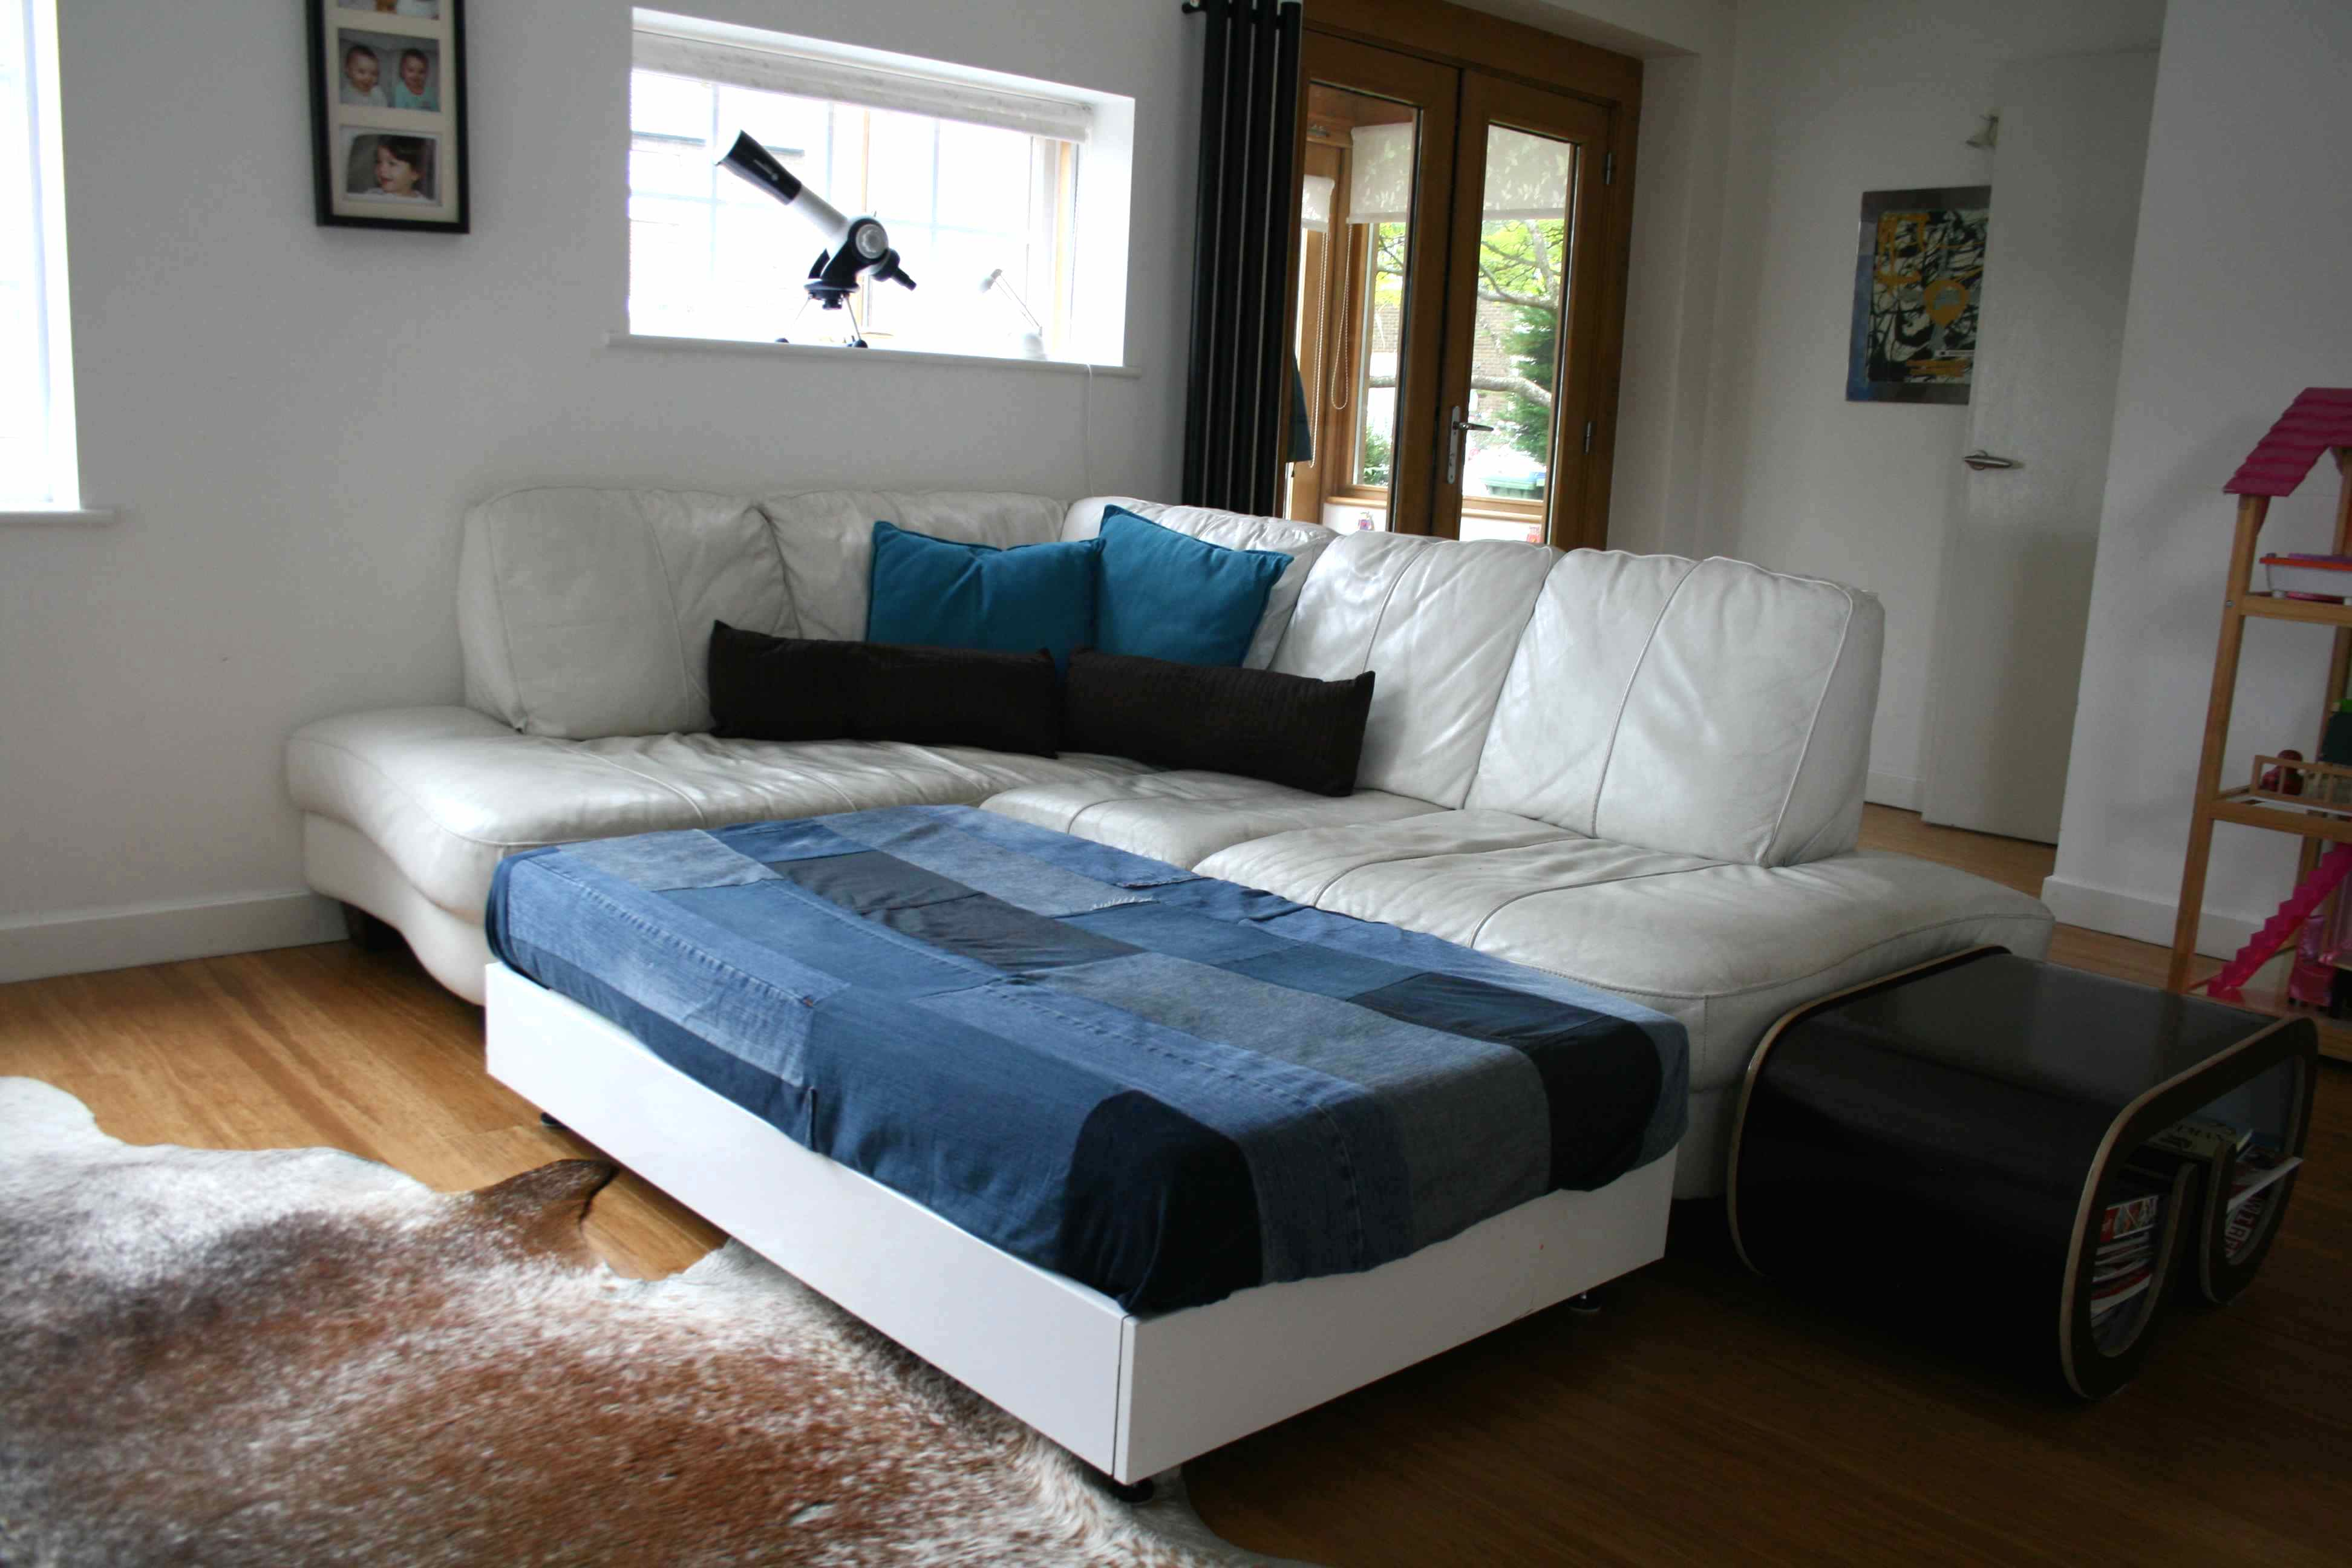 Diy Sofa Family Bed With Upcycled Denim Cover Luz Patterns